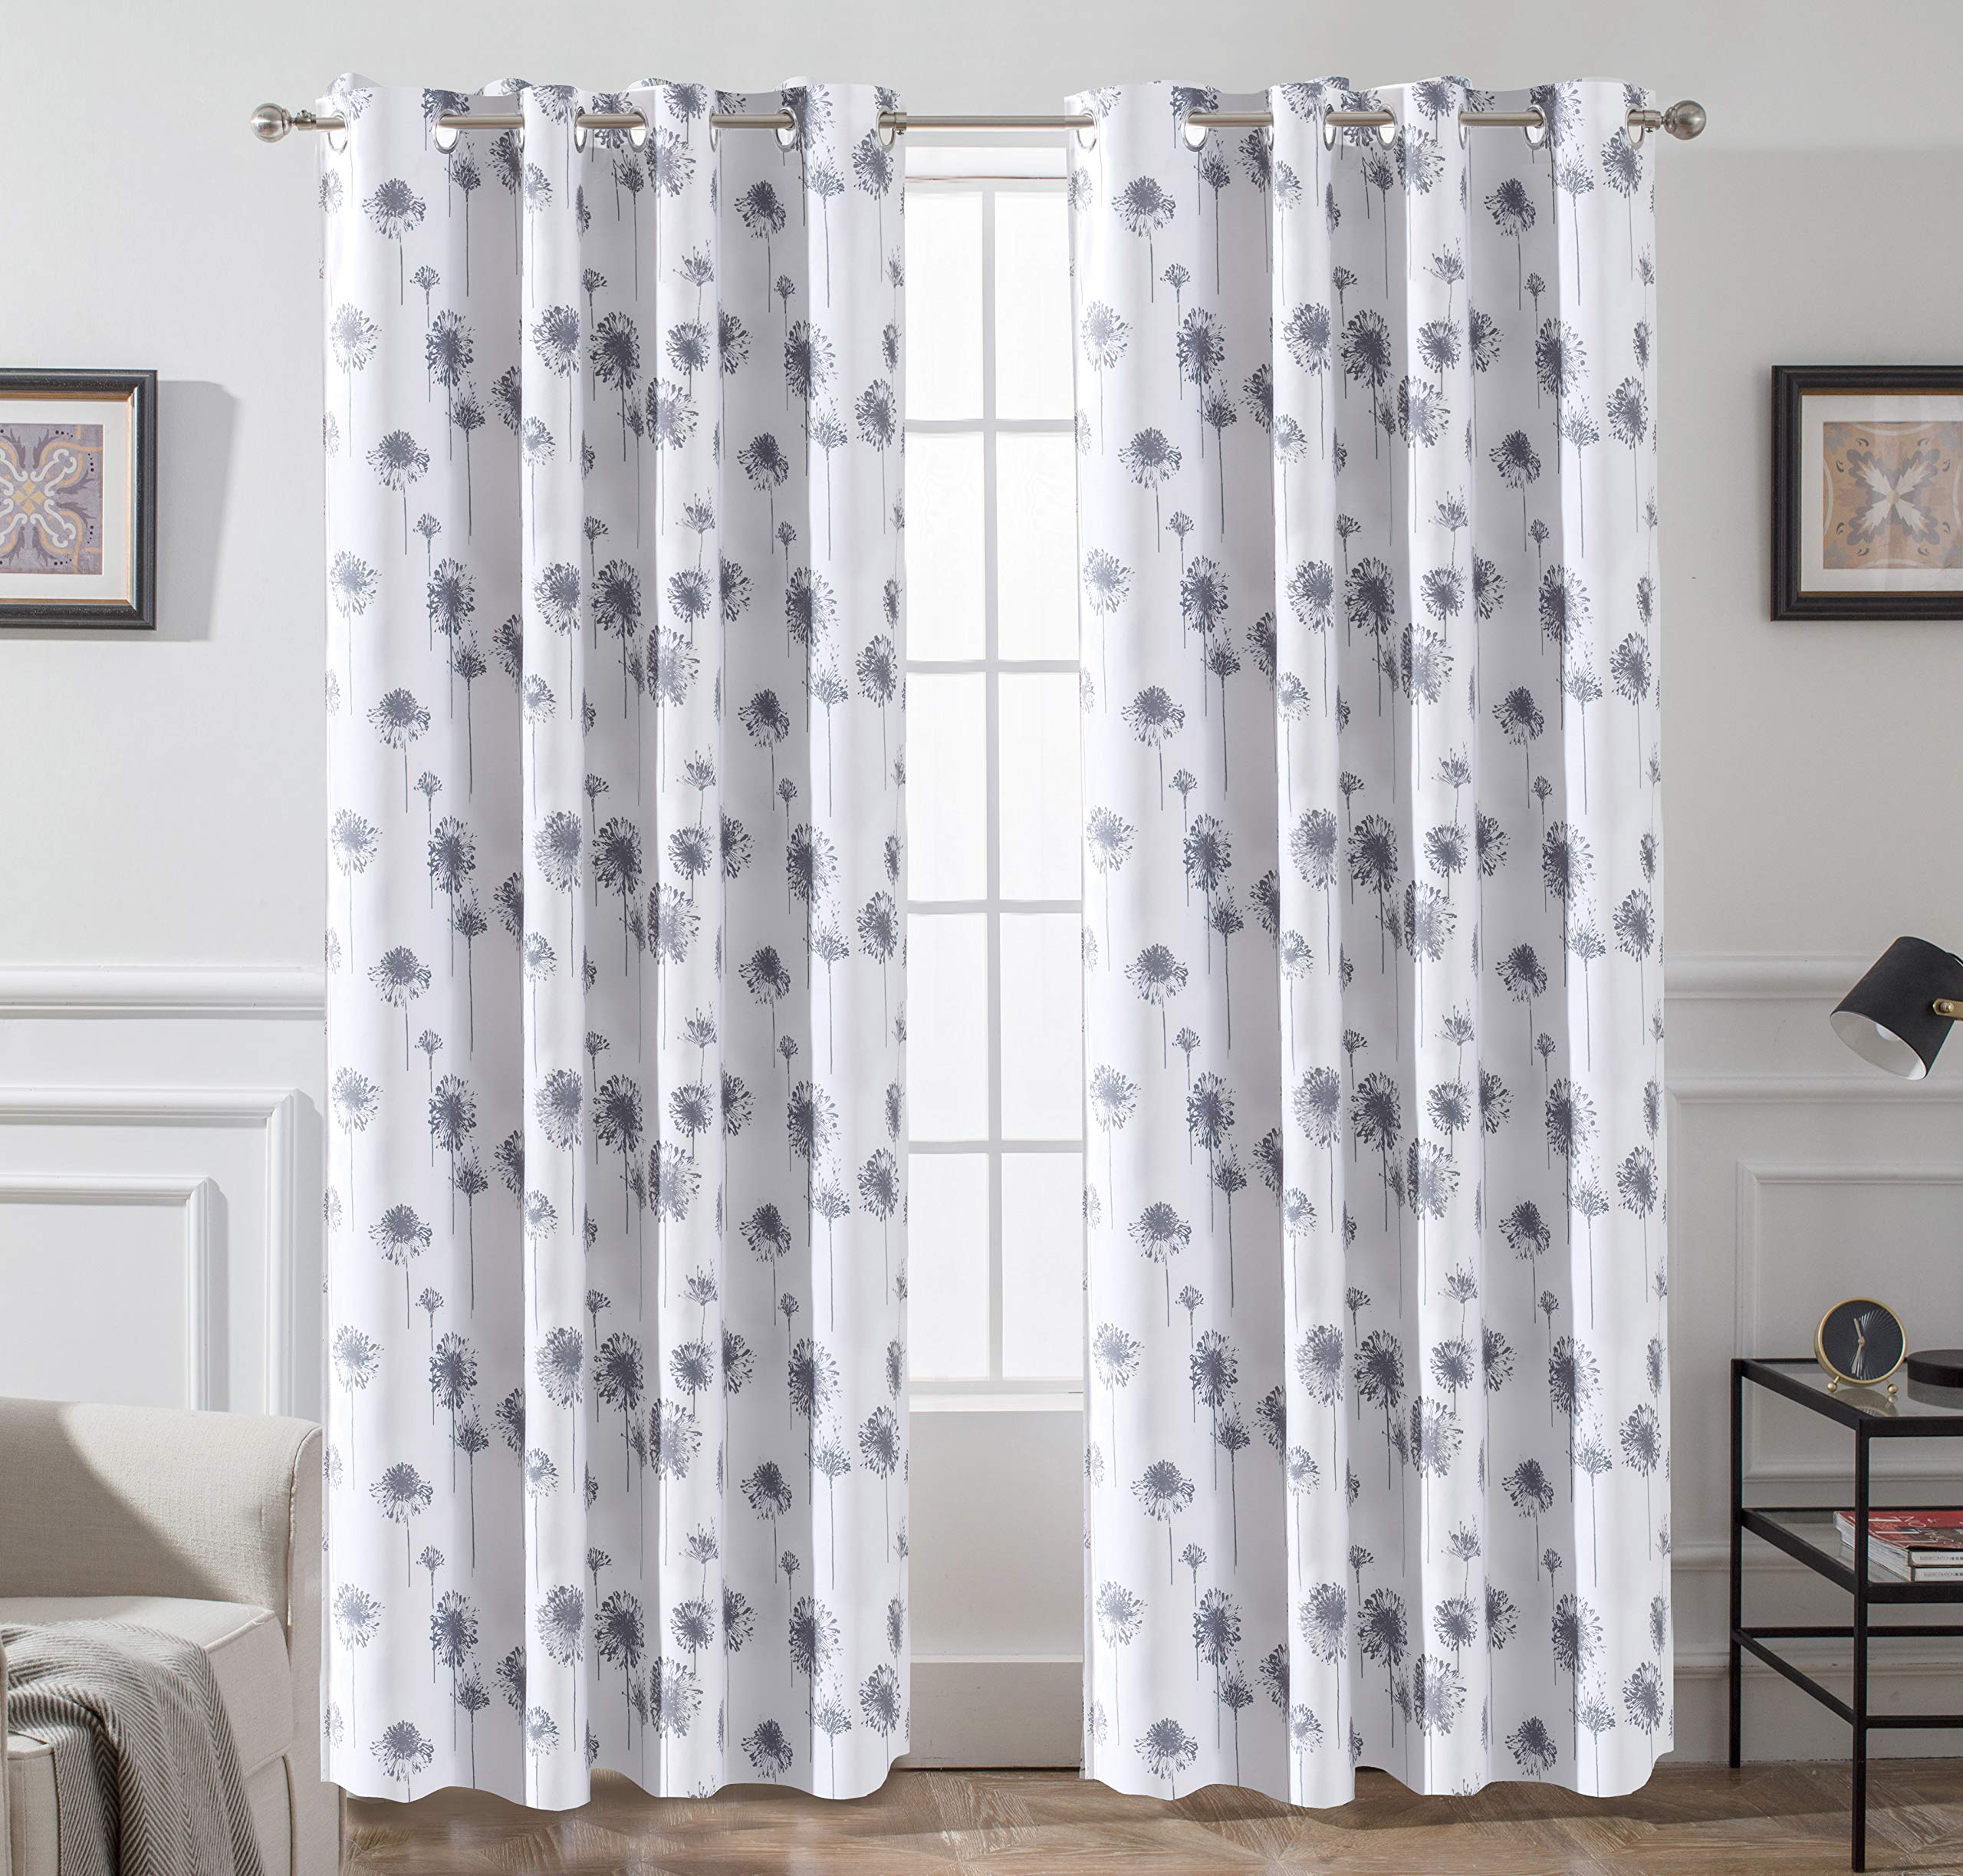 DriftAway Dandelion Floral Botanic Lined Thermal Insulated Blackout Room Darkening Grommet Energy Saving Window Curtains 2 Layers 2 Panels Each Size 52 Inch by 84 Inch Gray by DriftAway